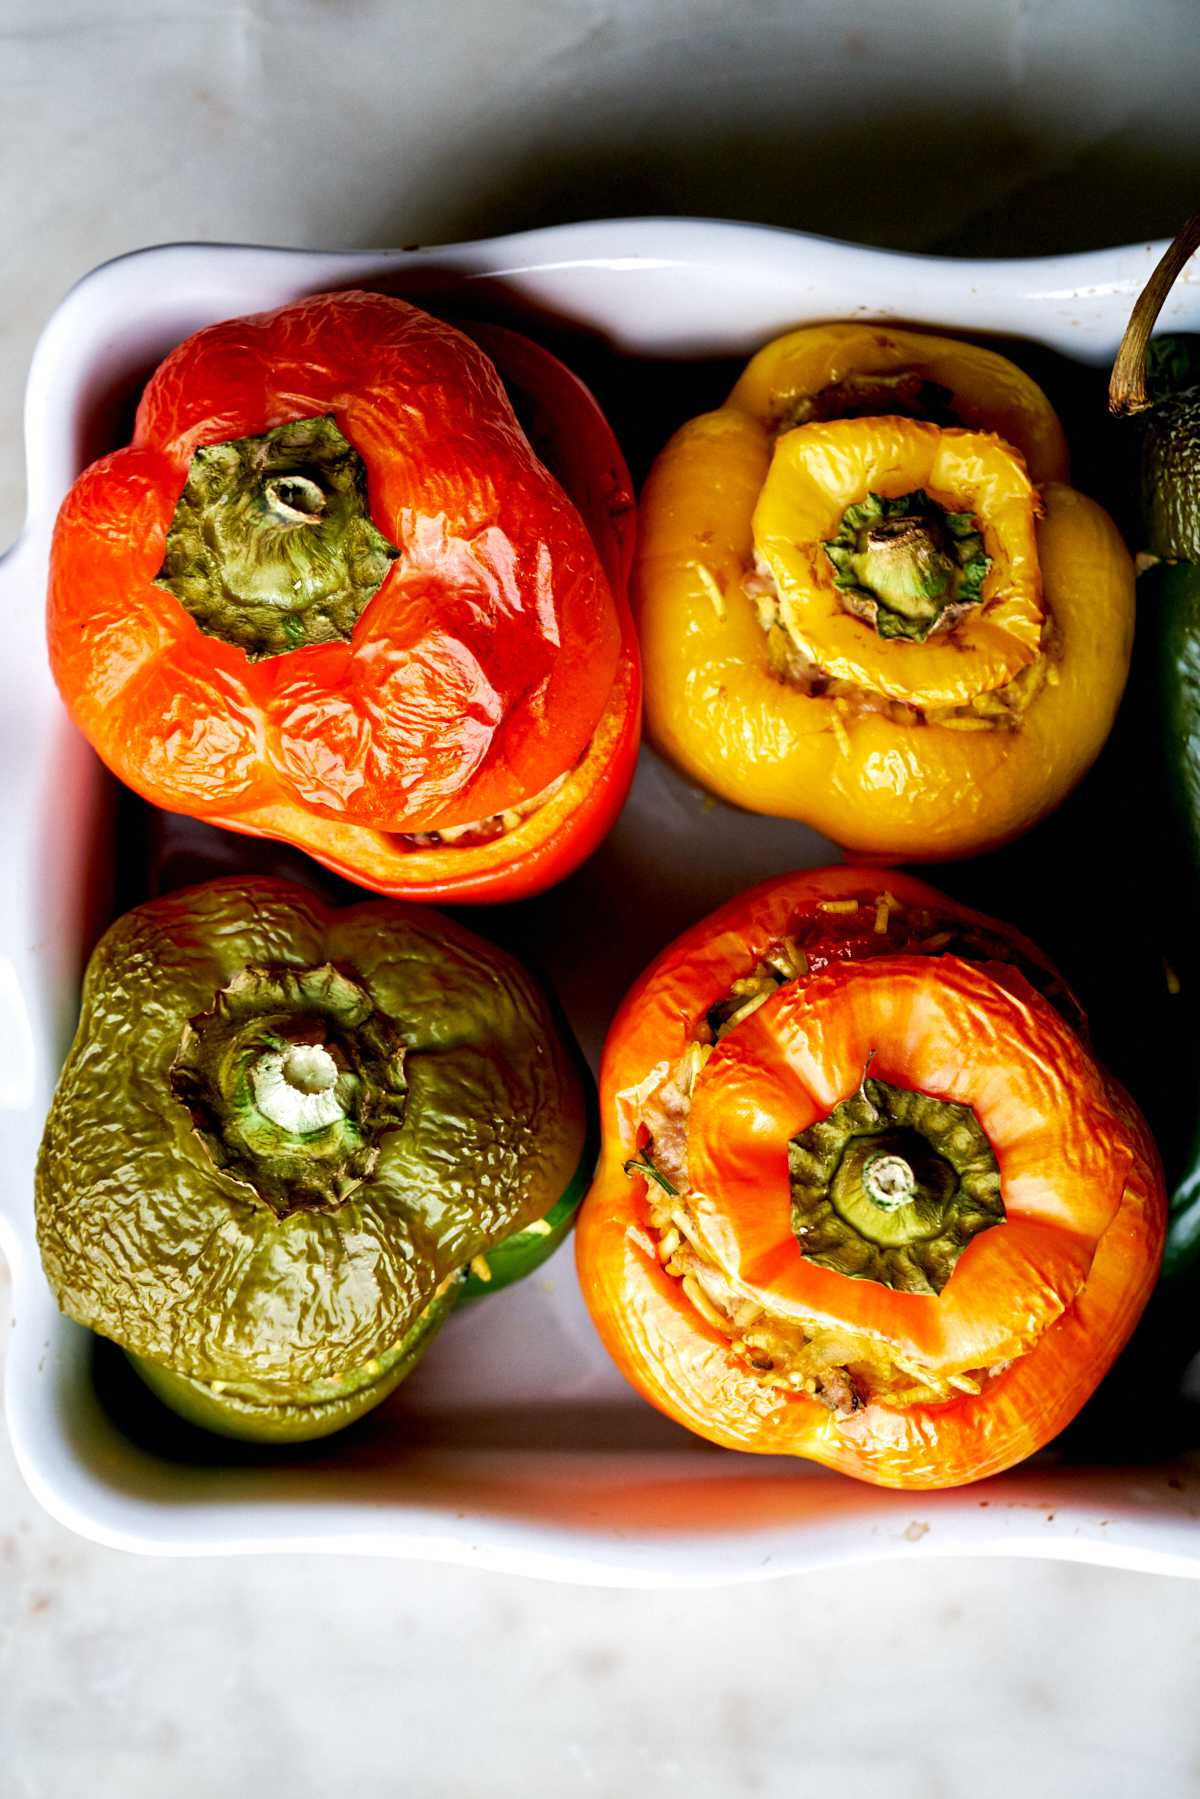 Cooked stuffed peppers.